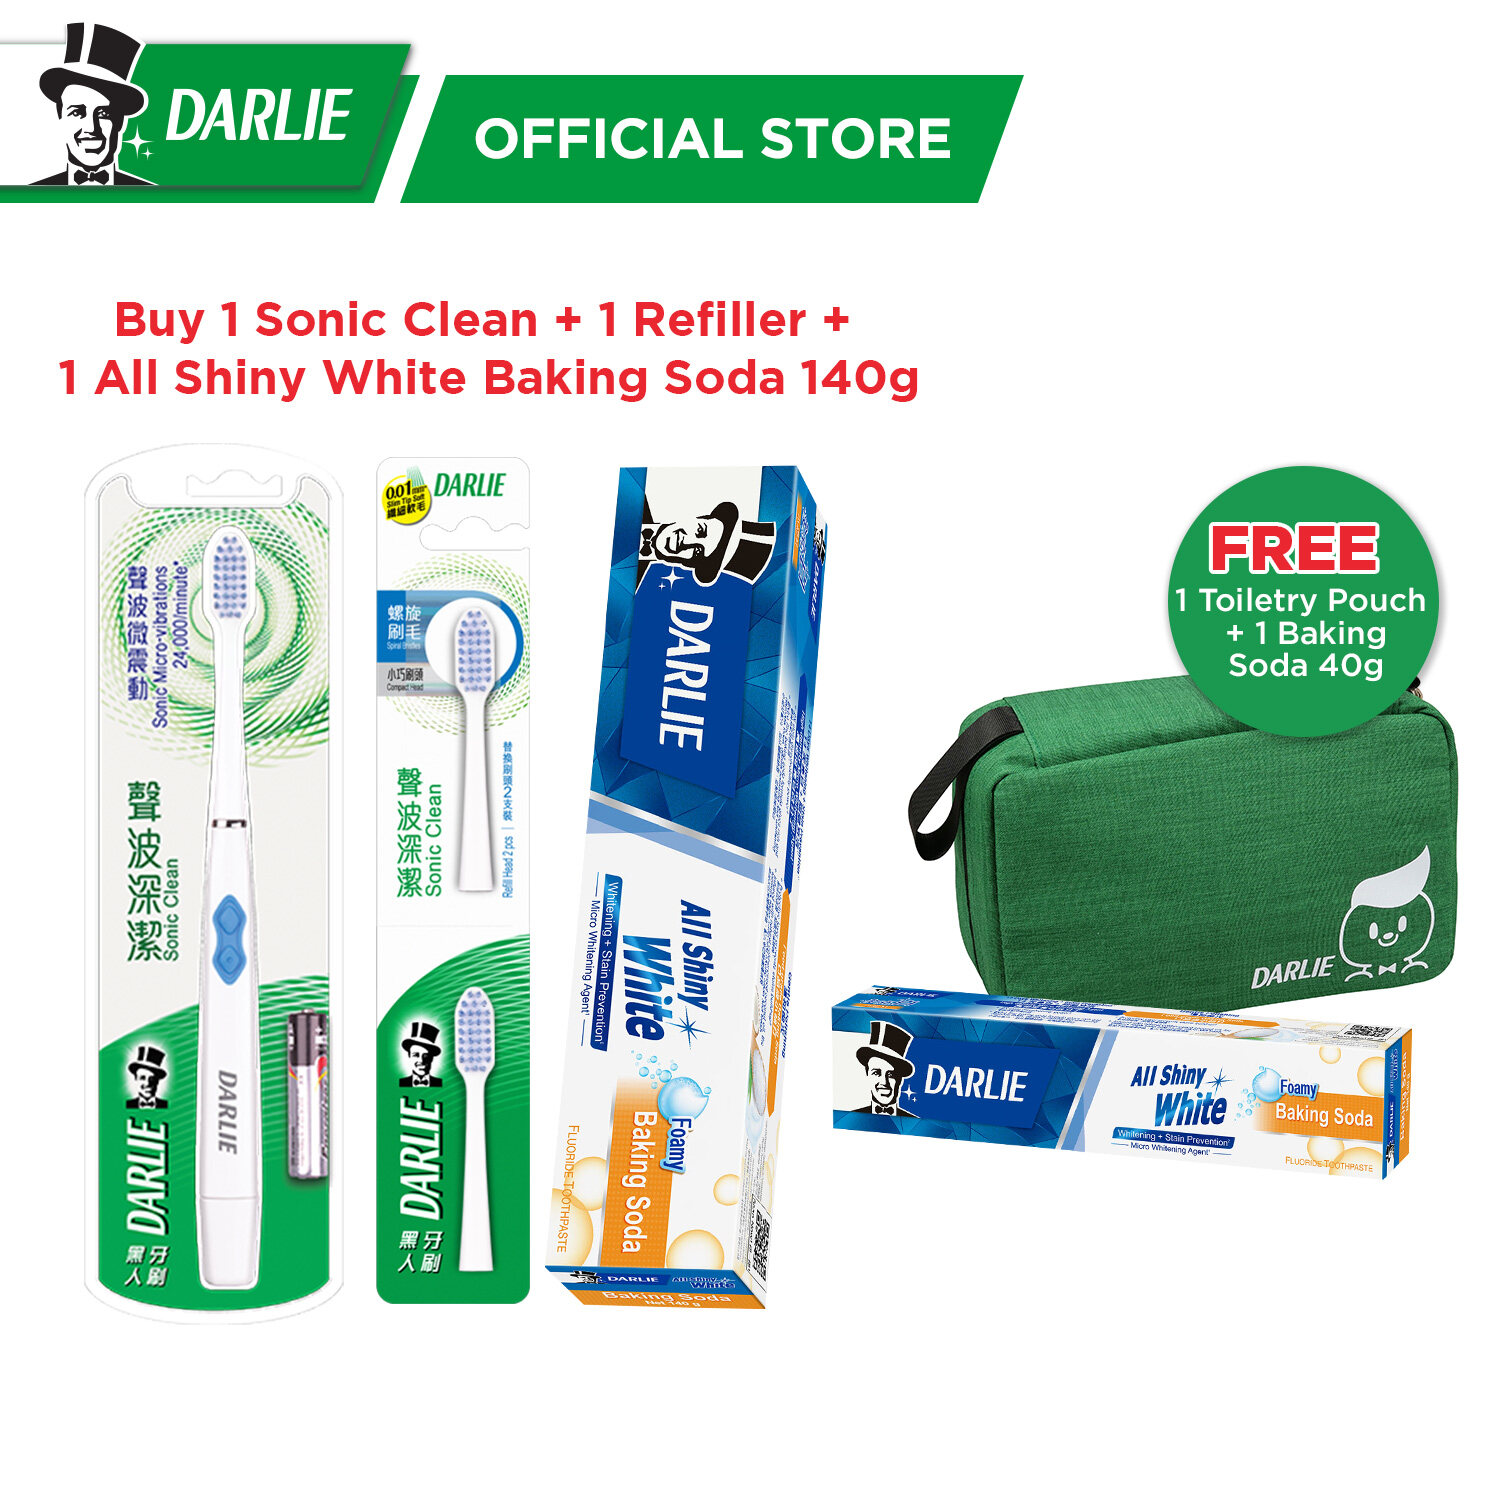 Darlie Sonic Clean Toothbrush With Refiller (Clean) & Darlie All Shiny White Baking Soda 250g FREE Toothy Toiletry Pouch & Darlie All Shiny White Baking Soda (40g)